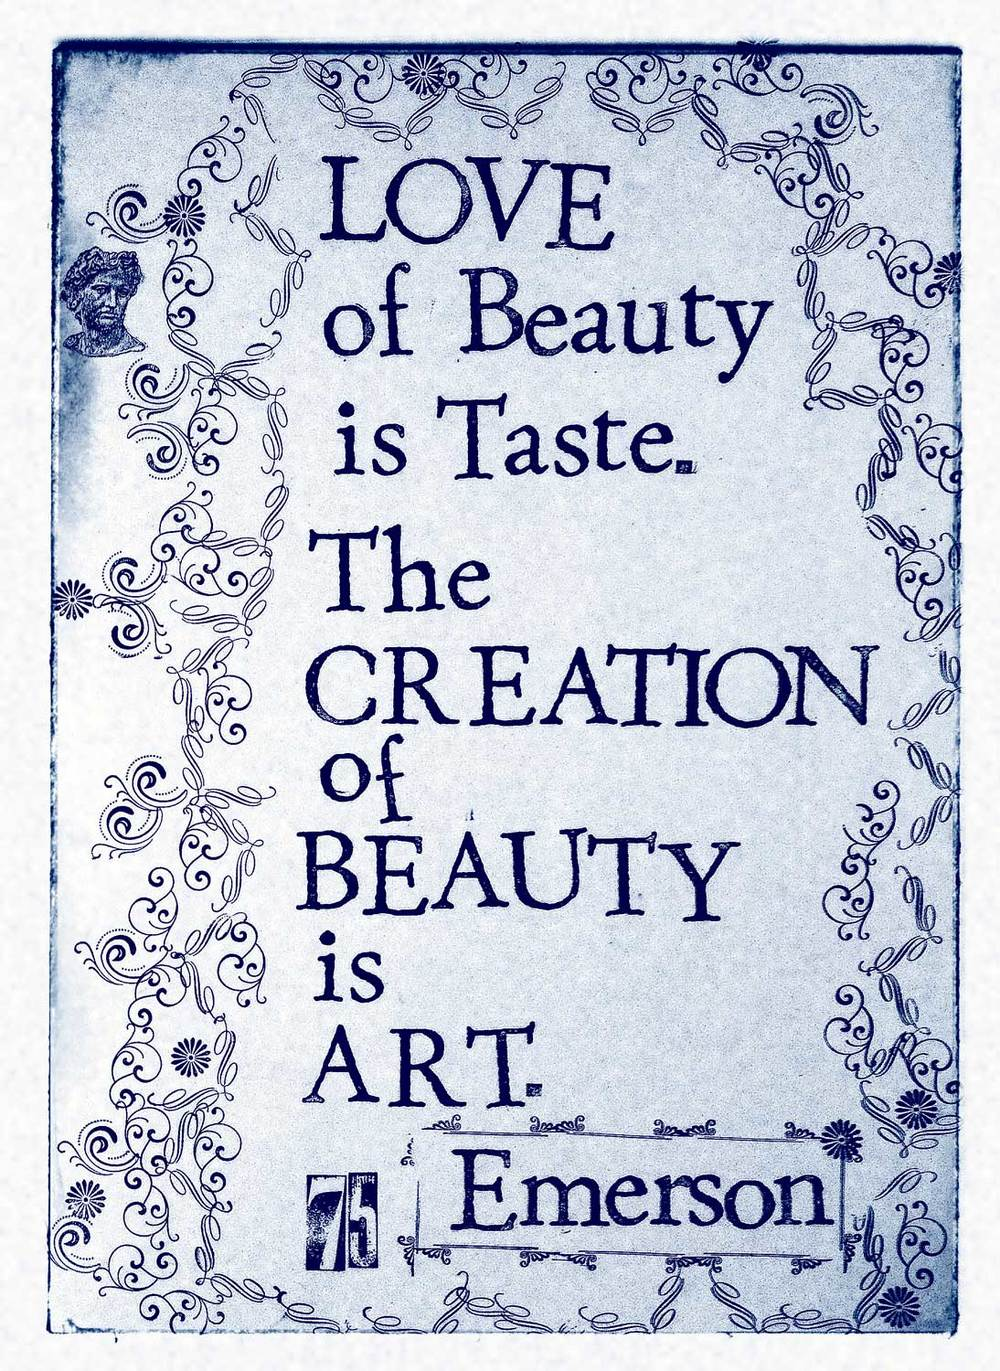 75.Cynotype.Love-of-Beauty-is-Taste-The-Creation-of-Beauty-is-Art-Emerson-75pg-copy.jpg